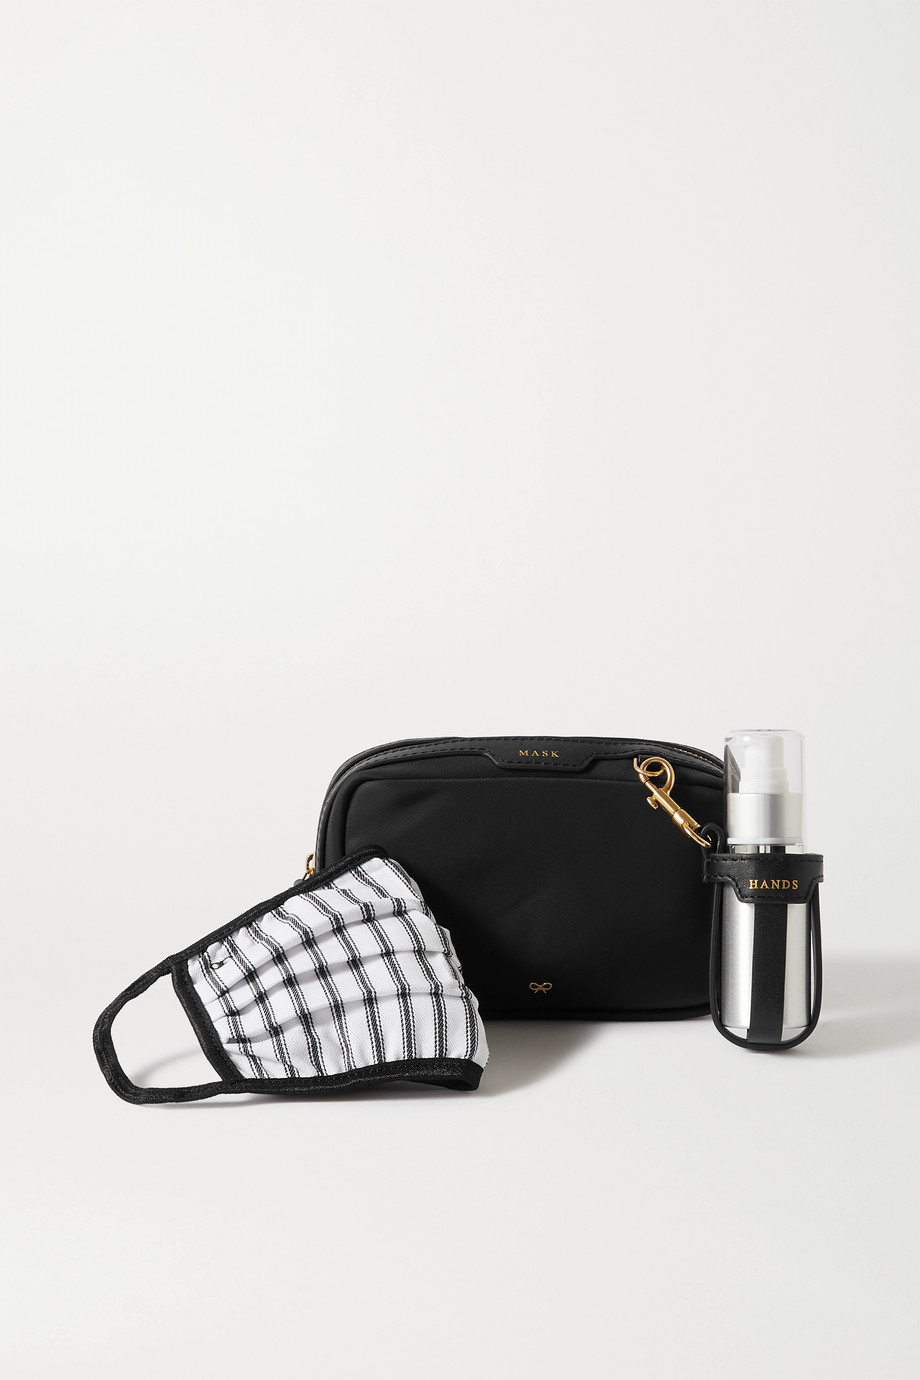 Anya Hindmarch Shell pouch, face mask and hand-sanitizer dispenser kit